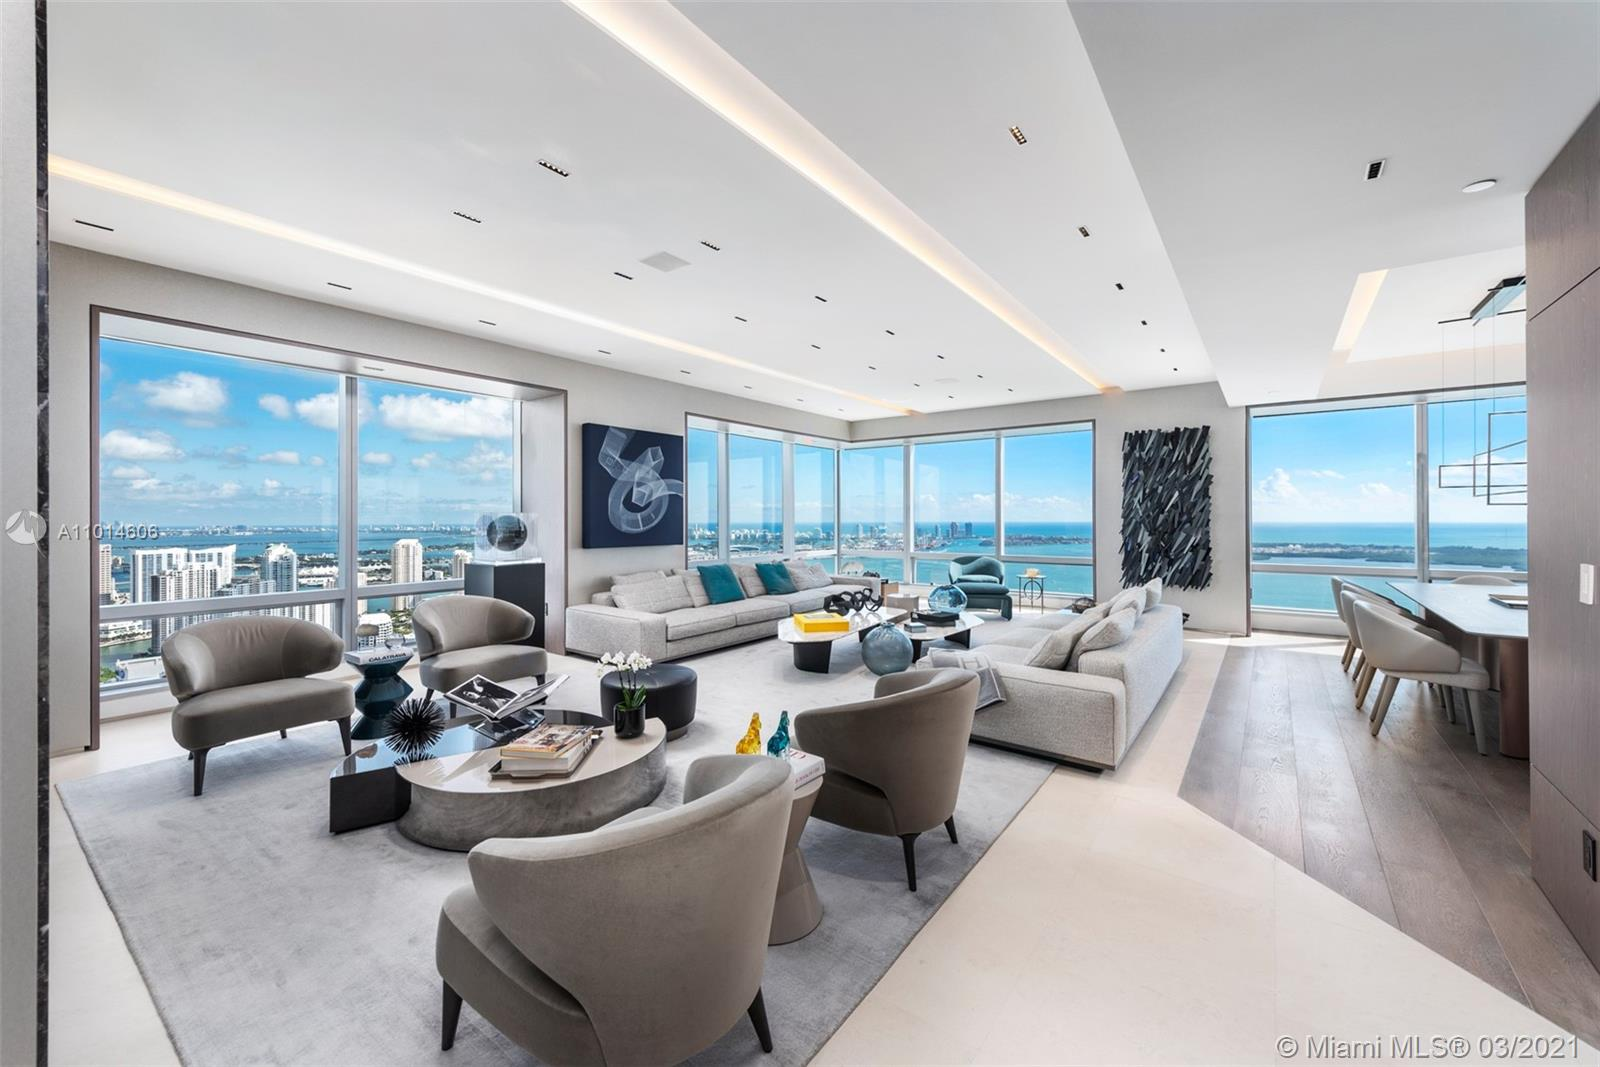 Stunning Four Seasons Residence on the 59th Floor with panoramic and unobstructed views of Biscayne Bay, Ocean, City of Miami, Key Biscayne and Fisher Island.  This combined E/D residence embodies 4,471 sf of high quality finishes throughout, a wine cellar perfect for a wine connoisseur, kitchen suited with top-of-the-line appliances and countertop eating.  Master bedroom with endless water views, en-suite bath with separate shower and tub, and walk-in closet. Residents of Four Seasons Residences Miami enjoy 5-star upscale amenities and services, including two heated pools, a hot tub, poolside cabanas, an owner's lounge, memberships to Equinox which includes a state-of-the-art fitness center and a full-service spa, 24-hour valet parking service, room service, and full-service concierge.